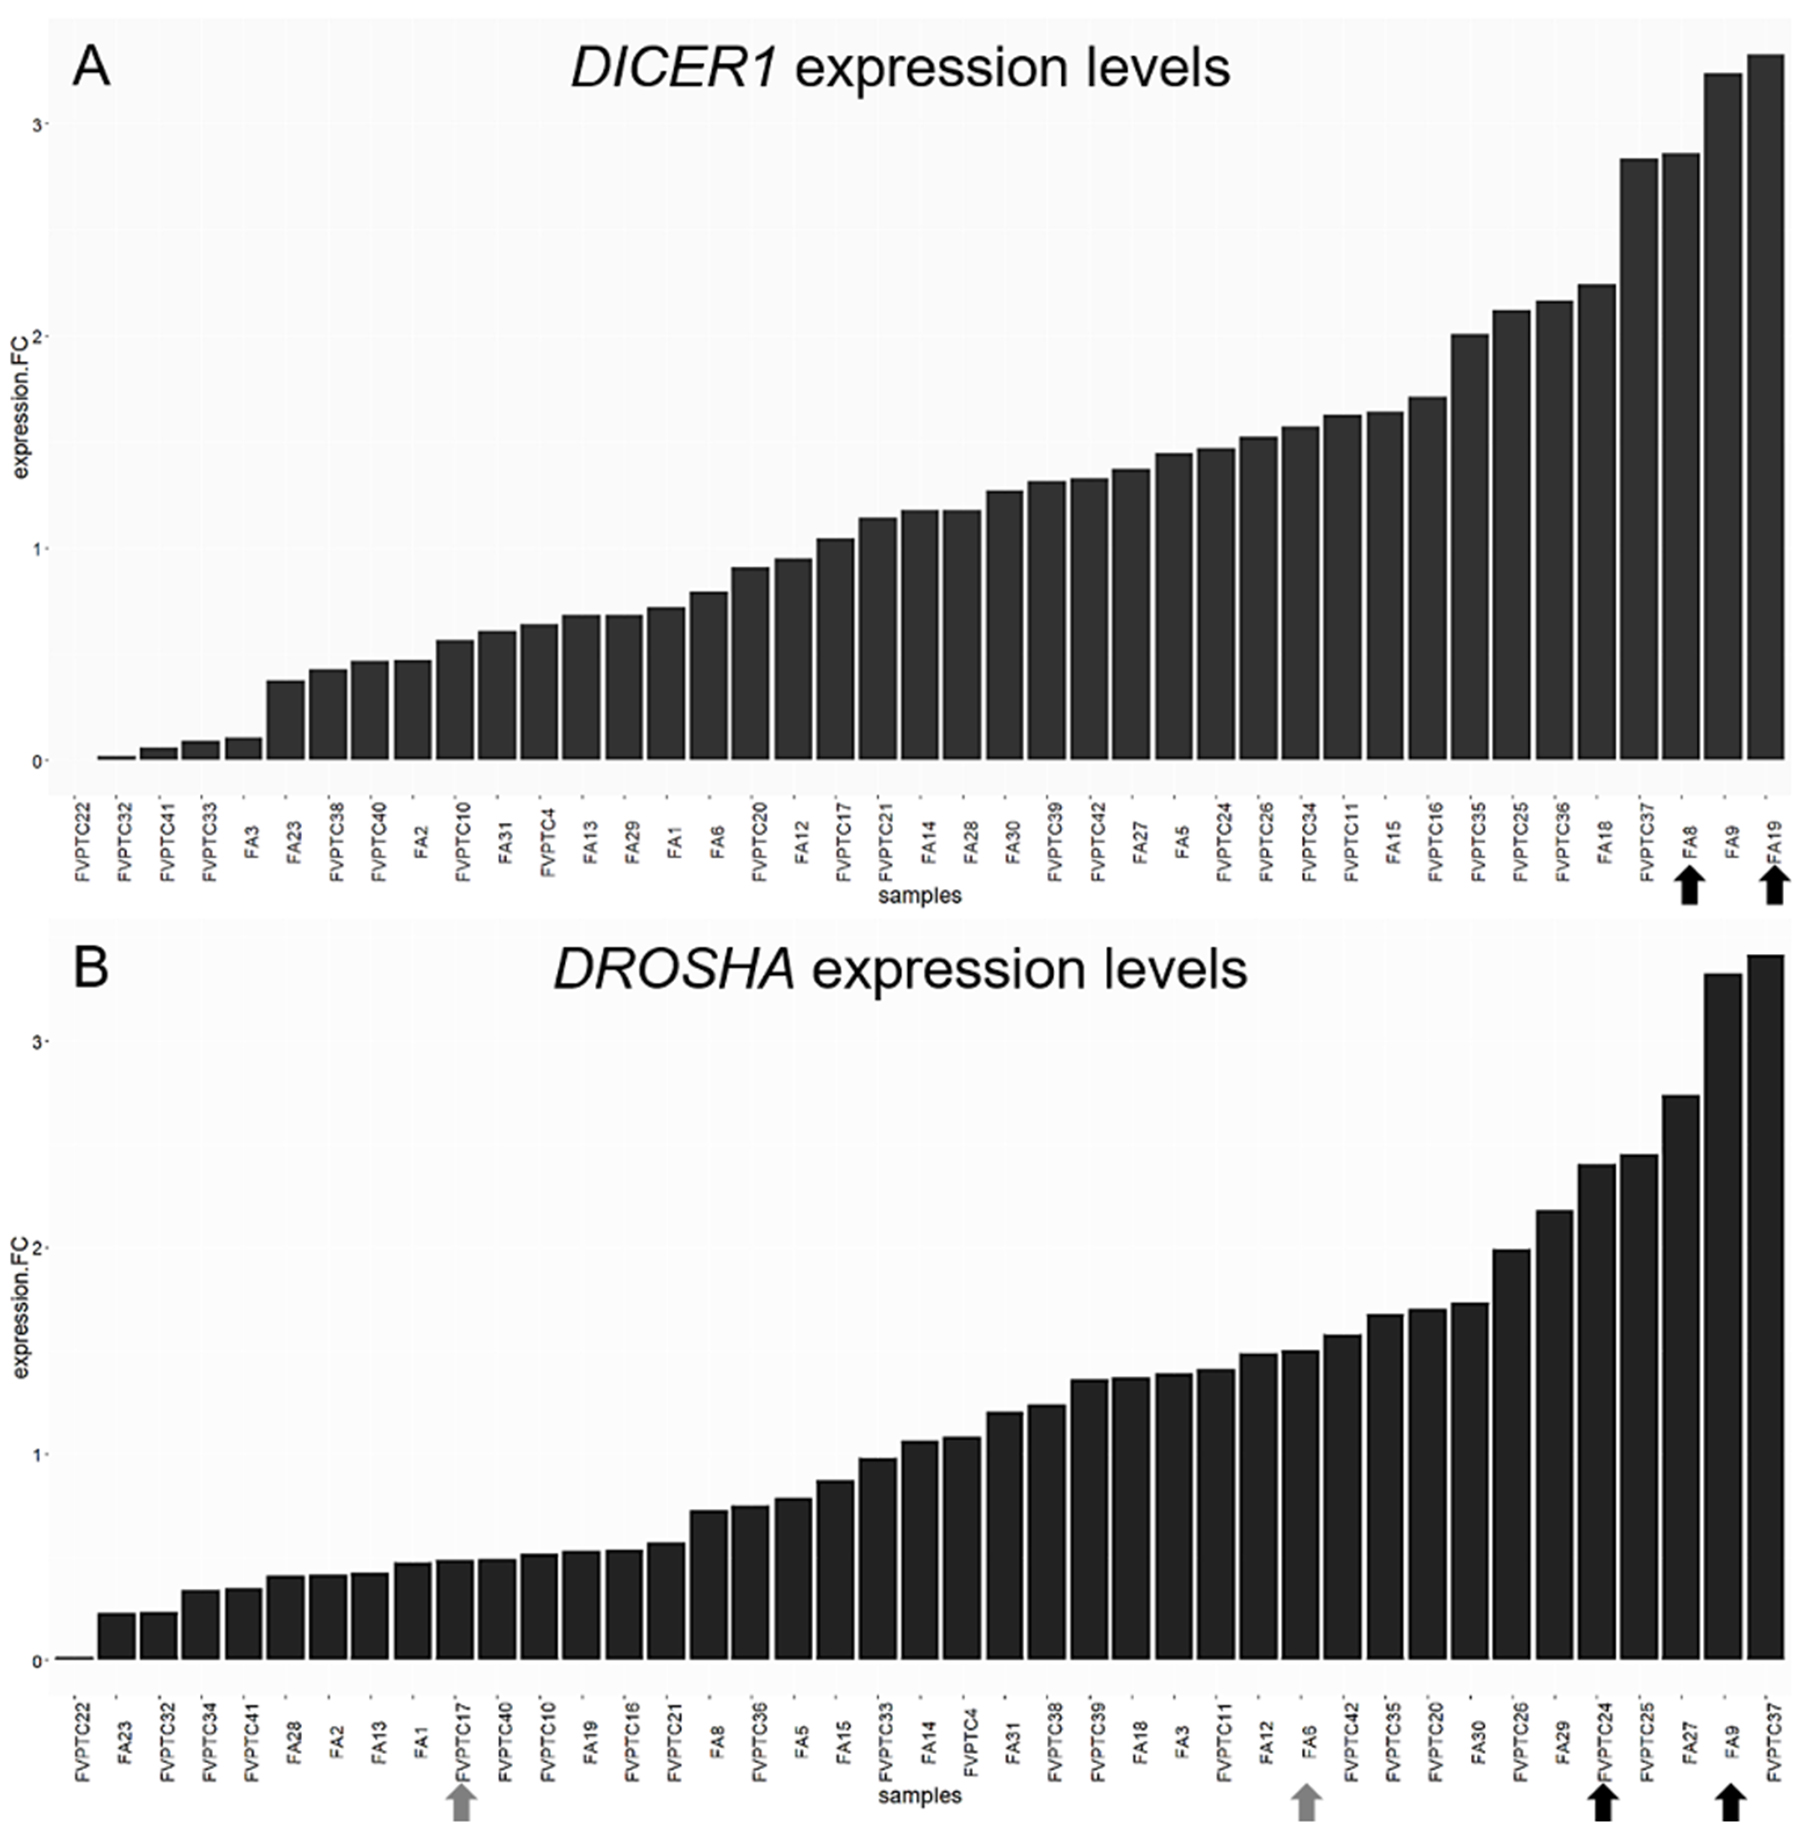 DICER1 and DROSHA expression levels.